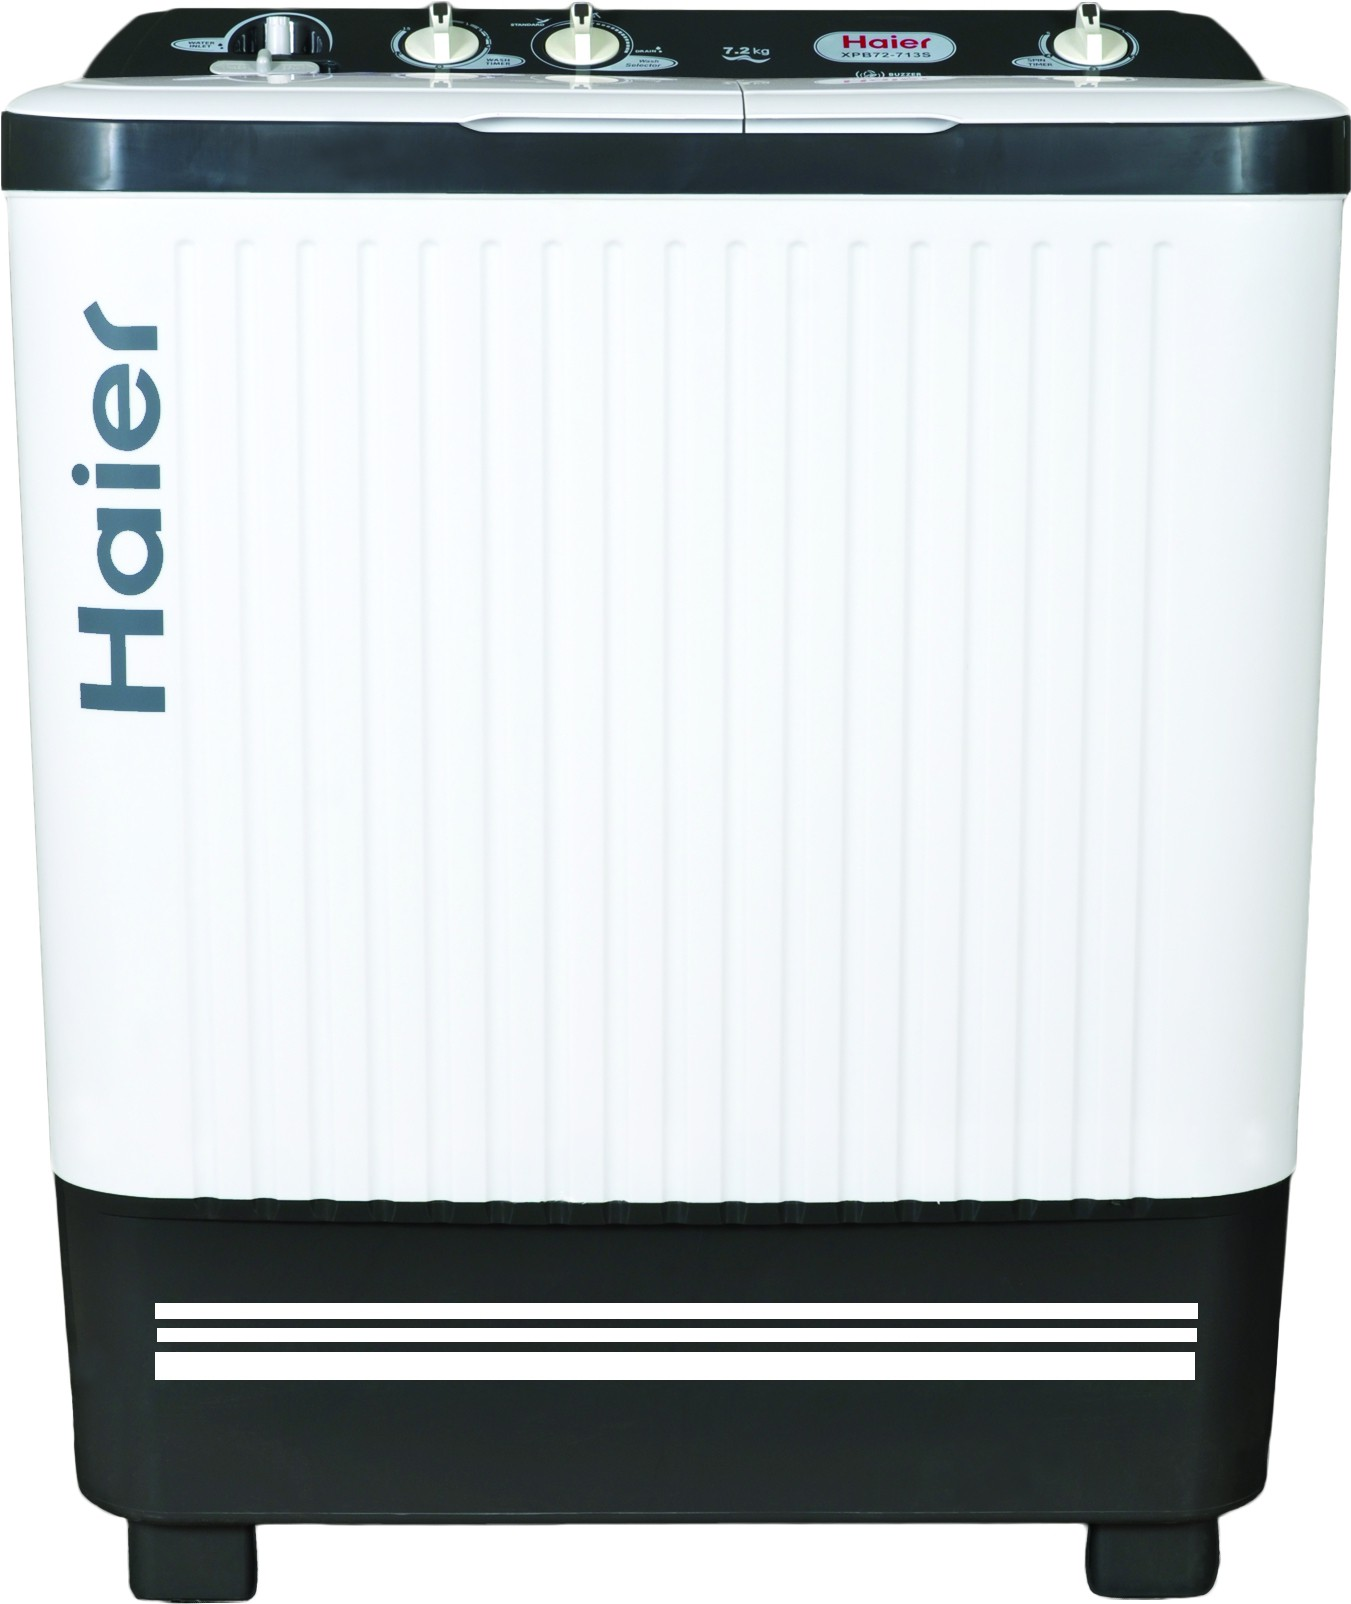 HAIER XPB 72-713S 7.2KG Semi Automatic Top Load Washing Machine